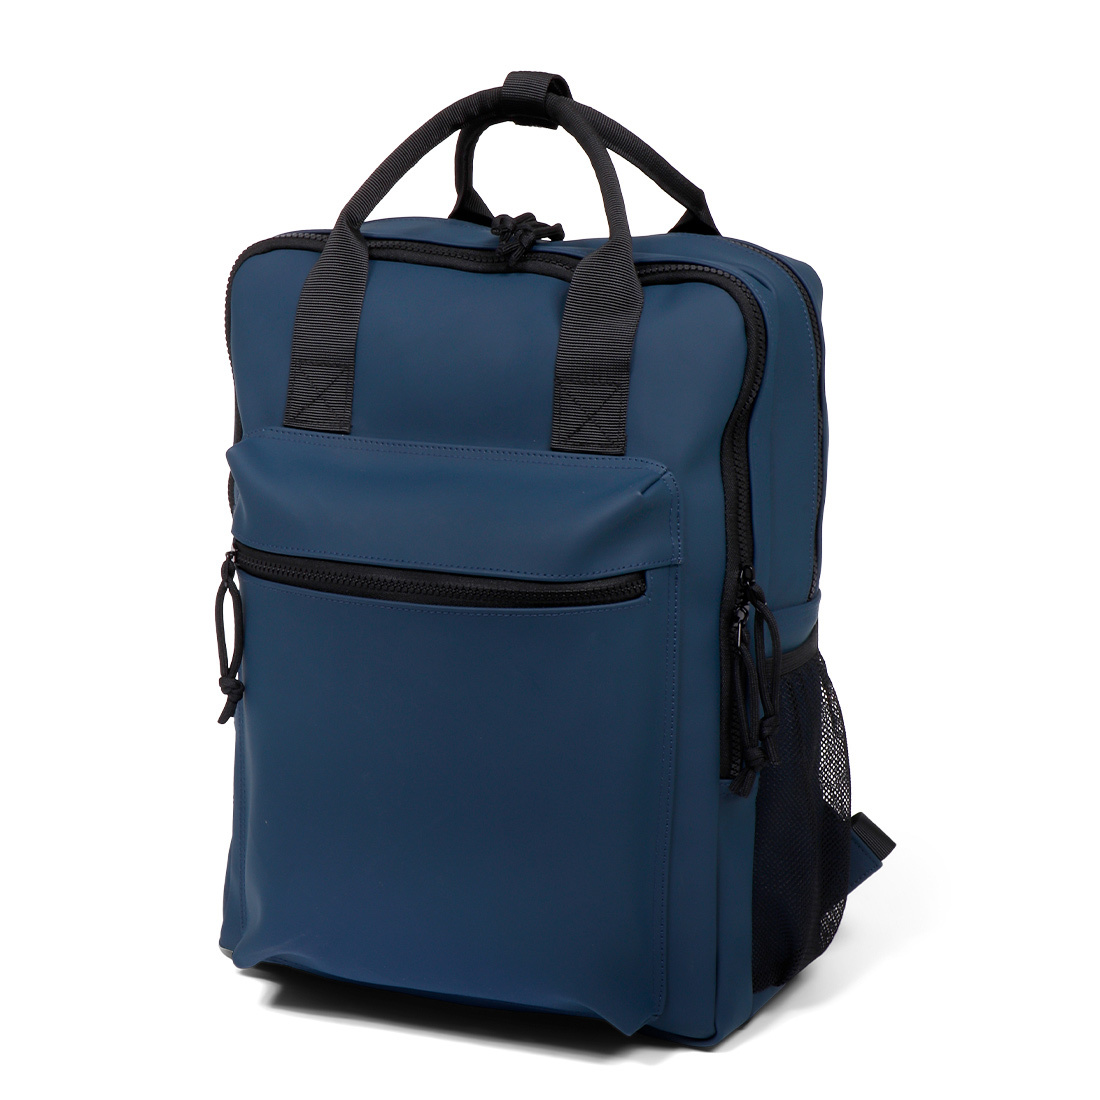 Norländer Dull PU Organizer Backpack Blue